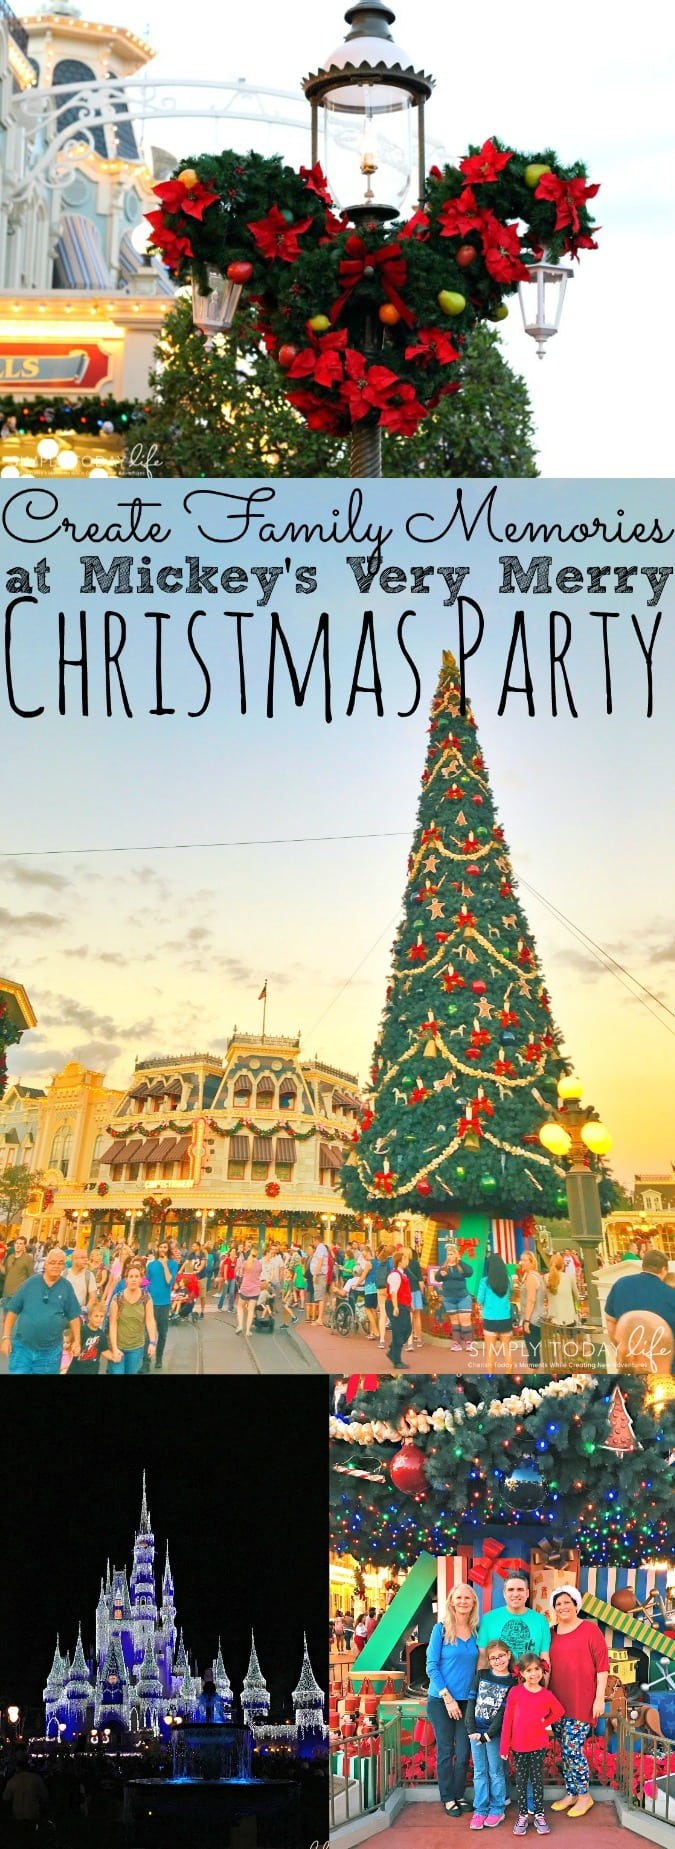 Create Family Memories at Mickey's Very Merry Christmas Party